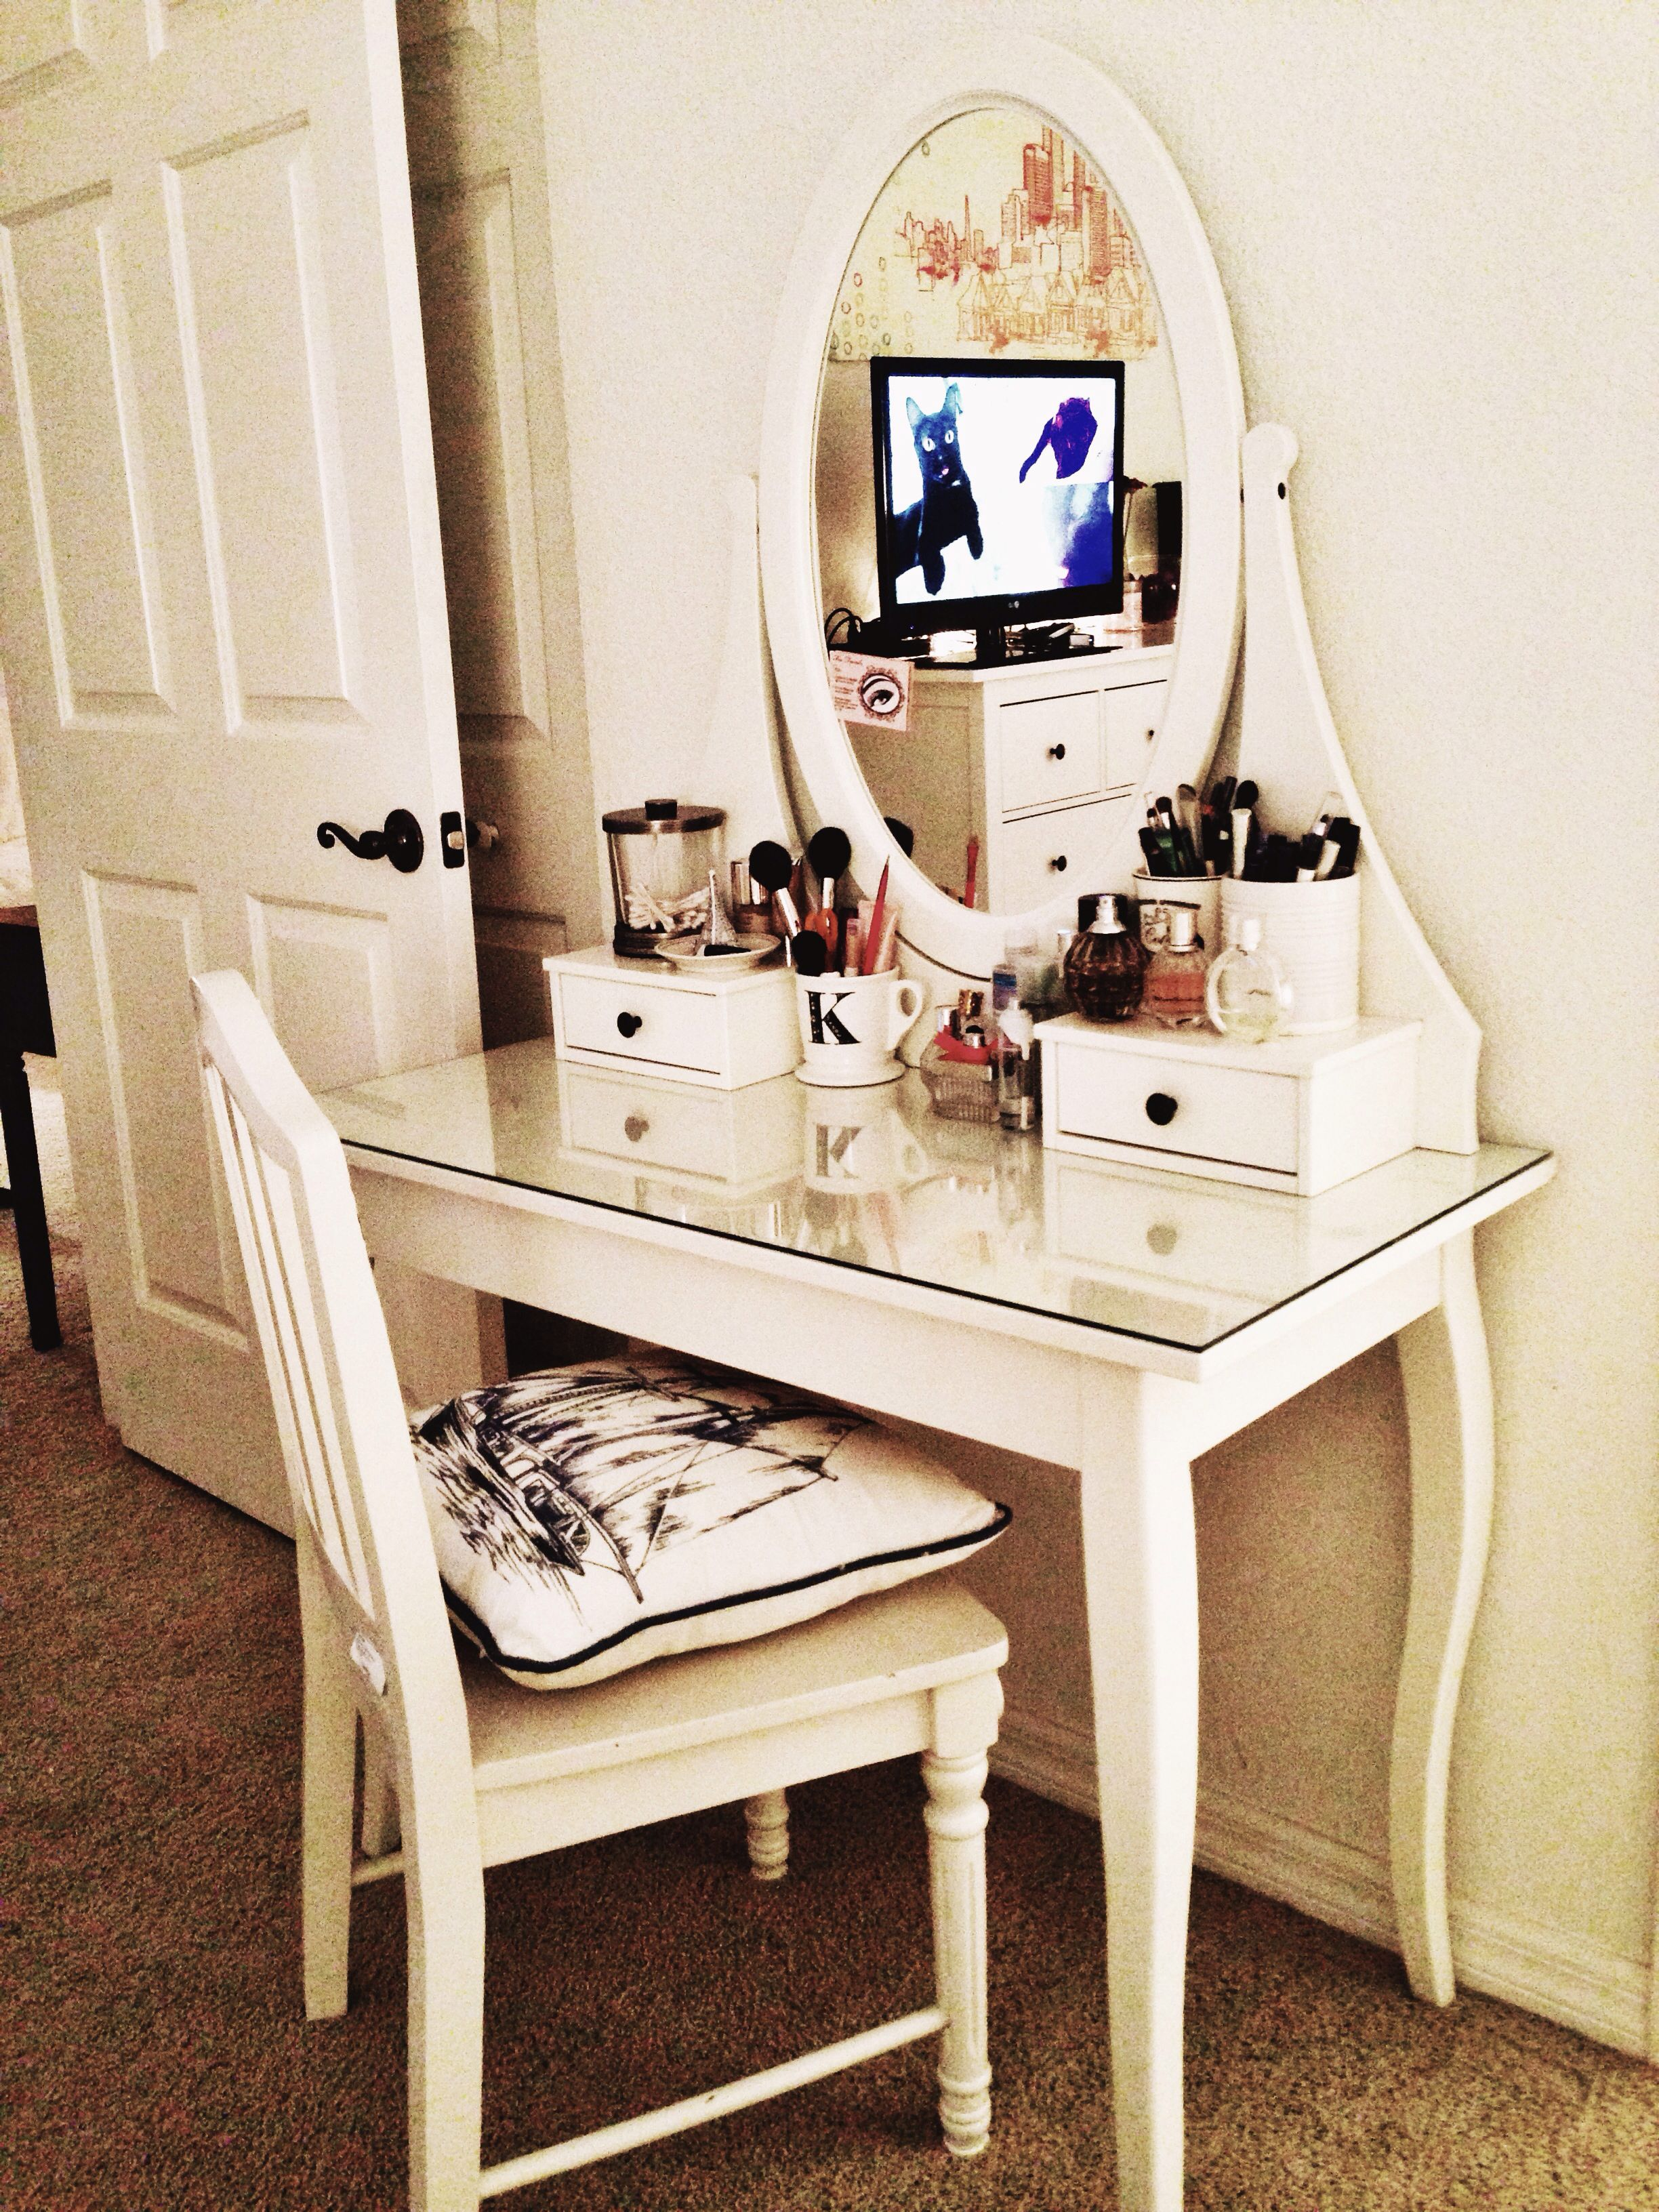 My new hemnes dressing table from ikea yay hamnes for Dressing room ideas ikea